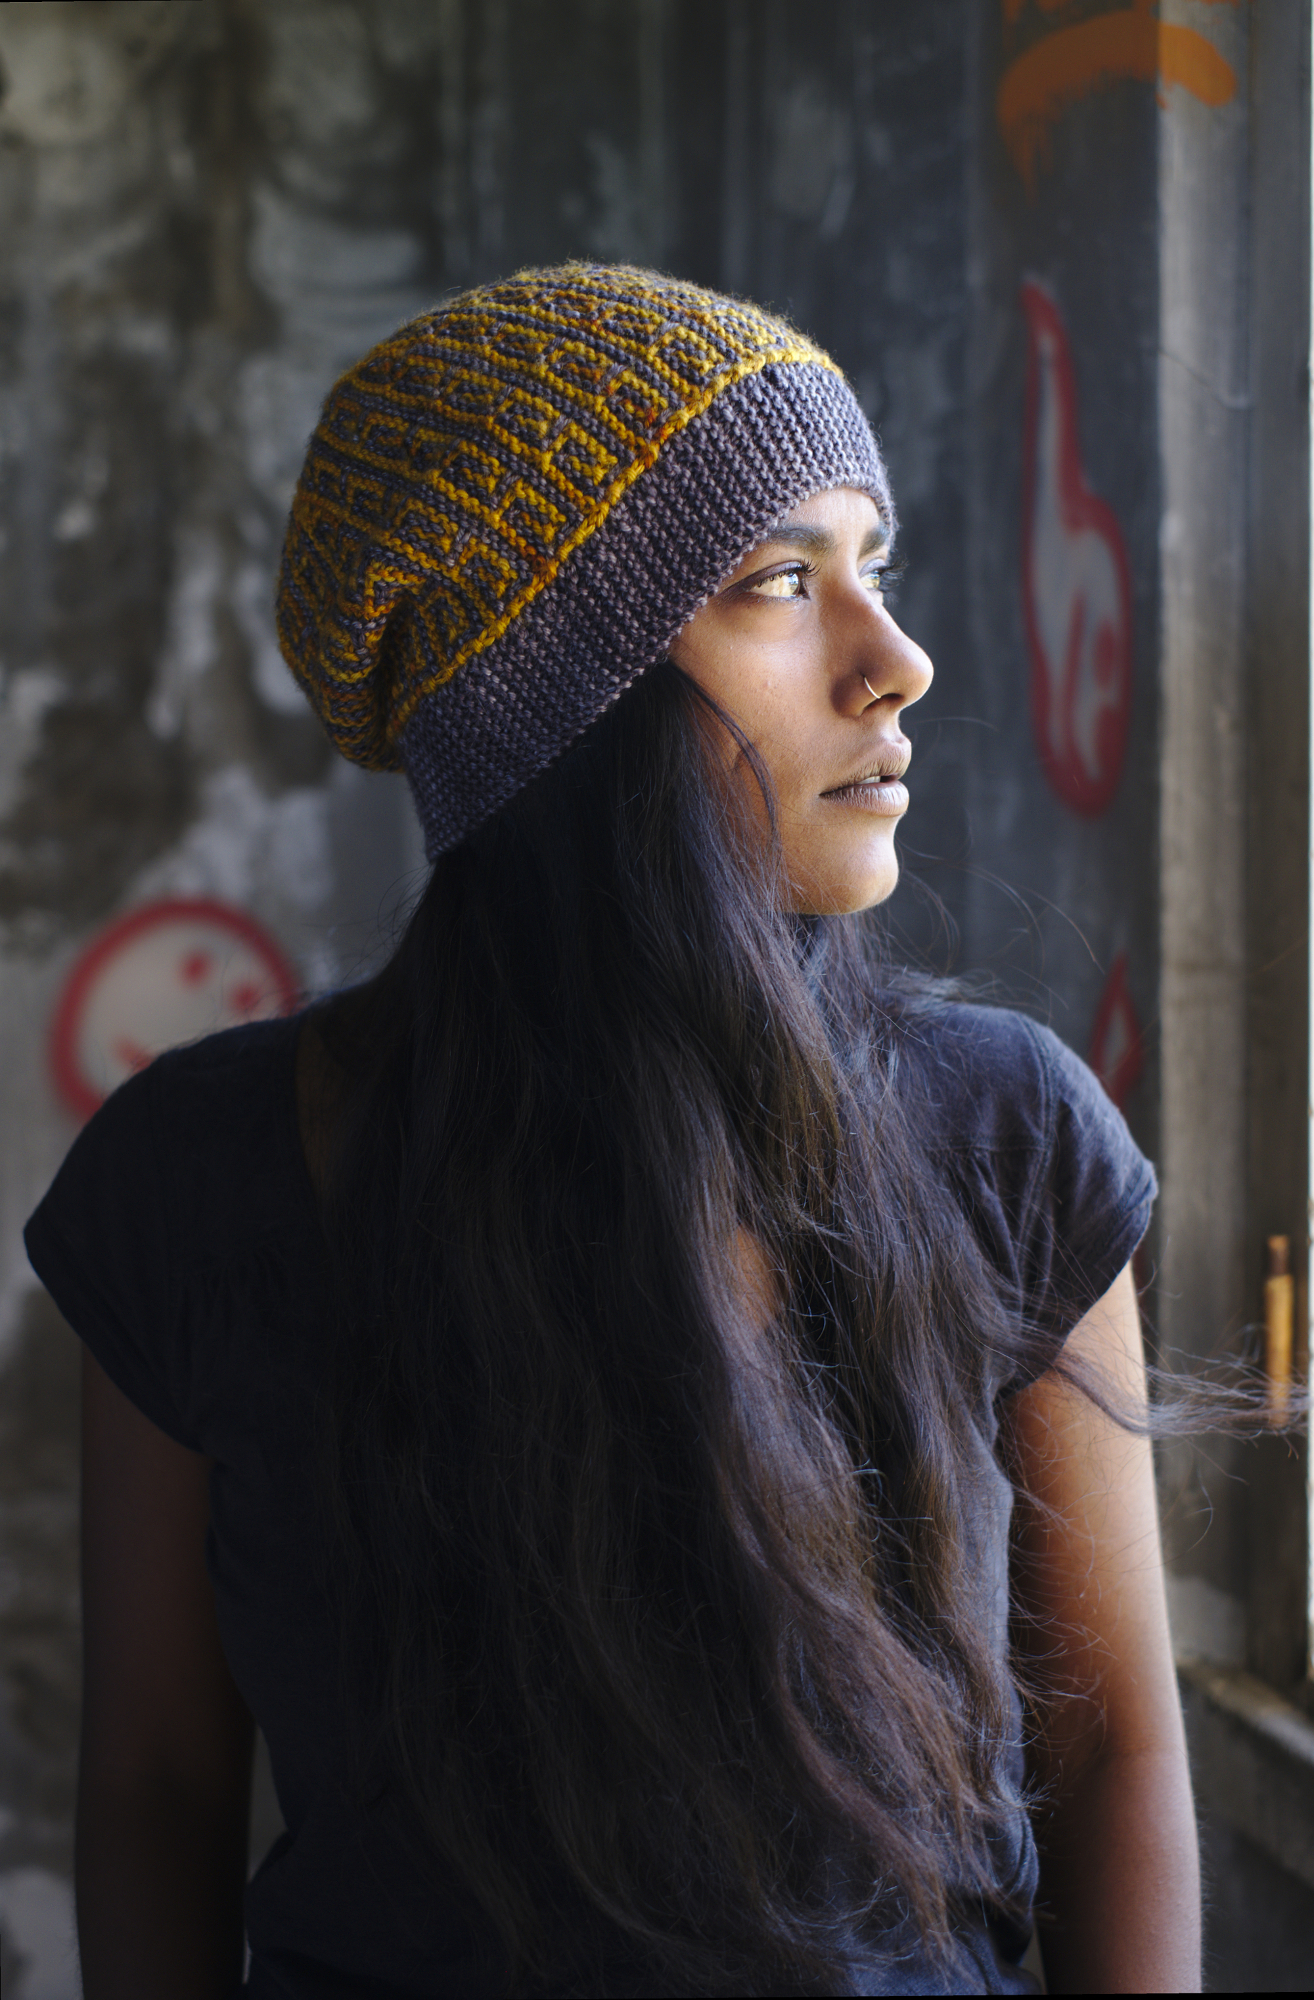 sideways knit mosaic hat knitting pattern for dk weight yarn